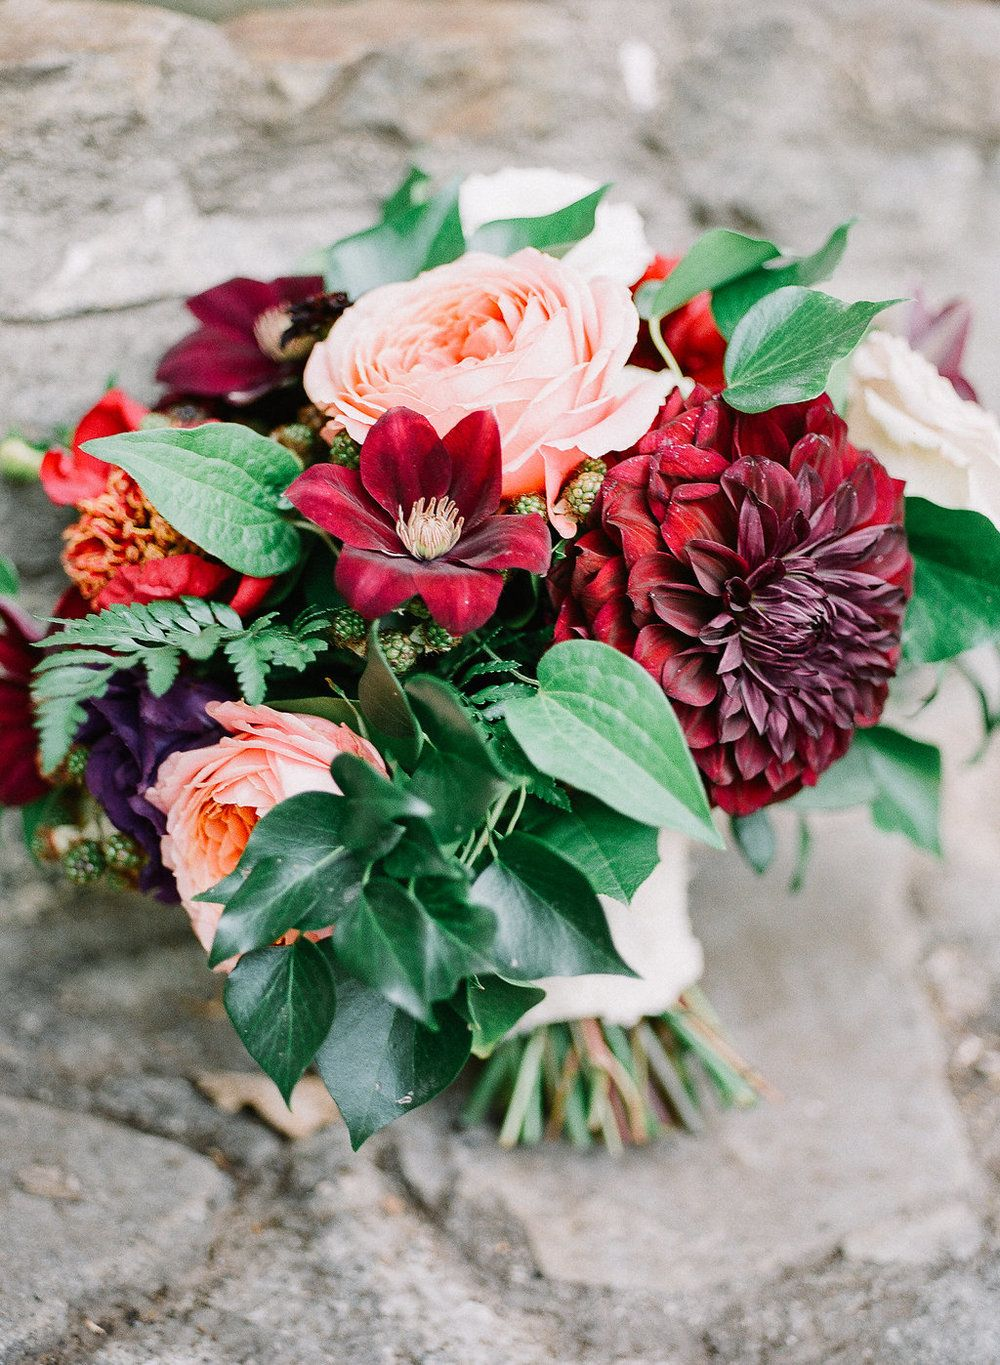 Romantic, burgundy, marsala and peach bridal bouquet of romantic antike garden roses, dahlias, peonies and clematis by Compass Floral | Fallbrook Treehouse, Fallbrook